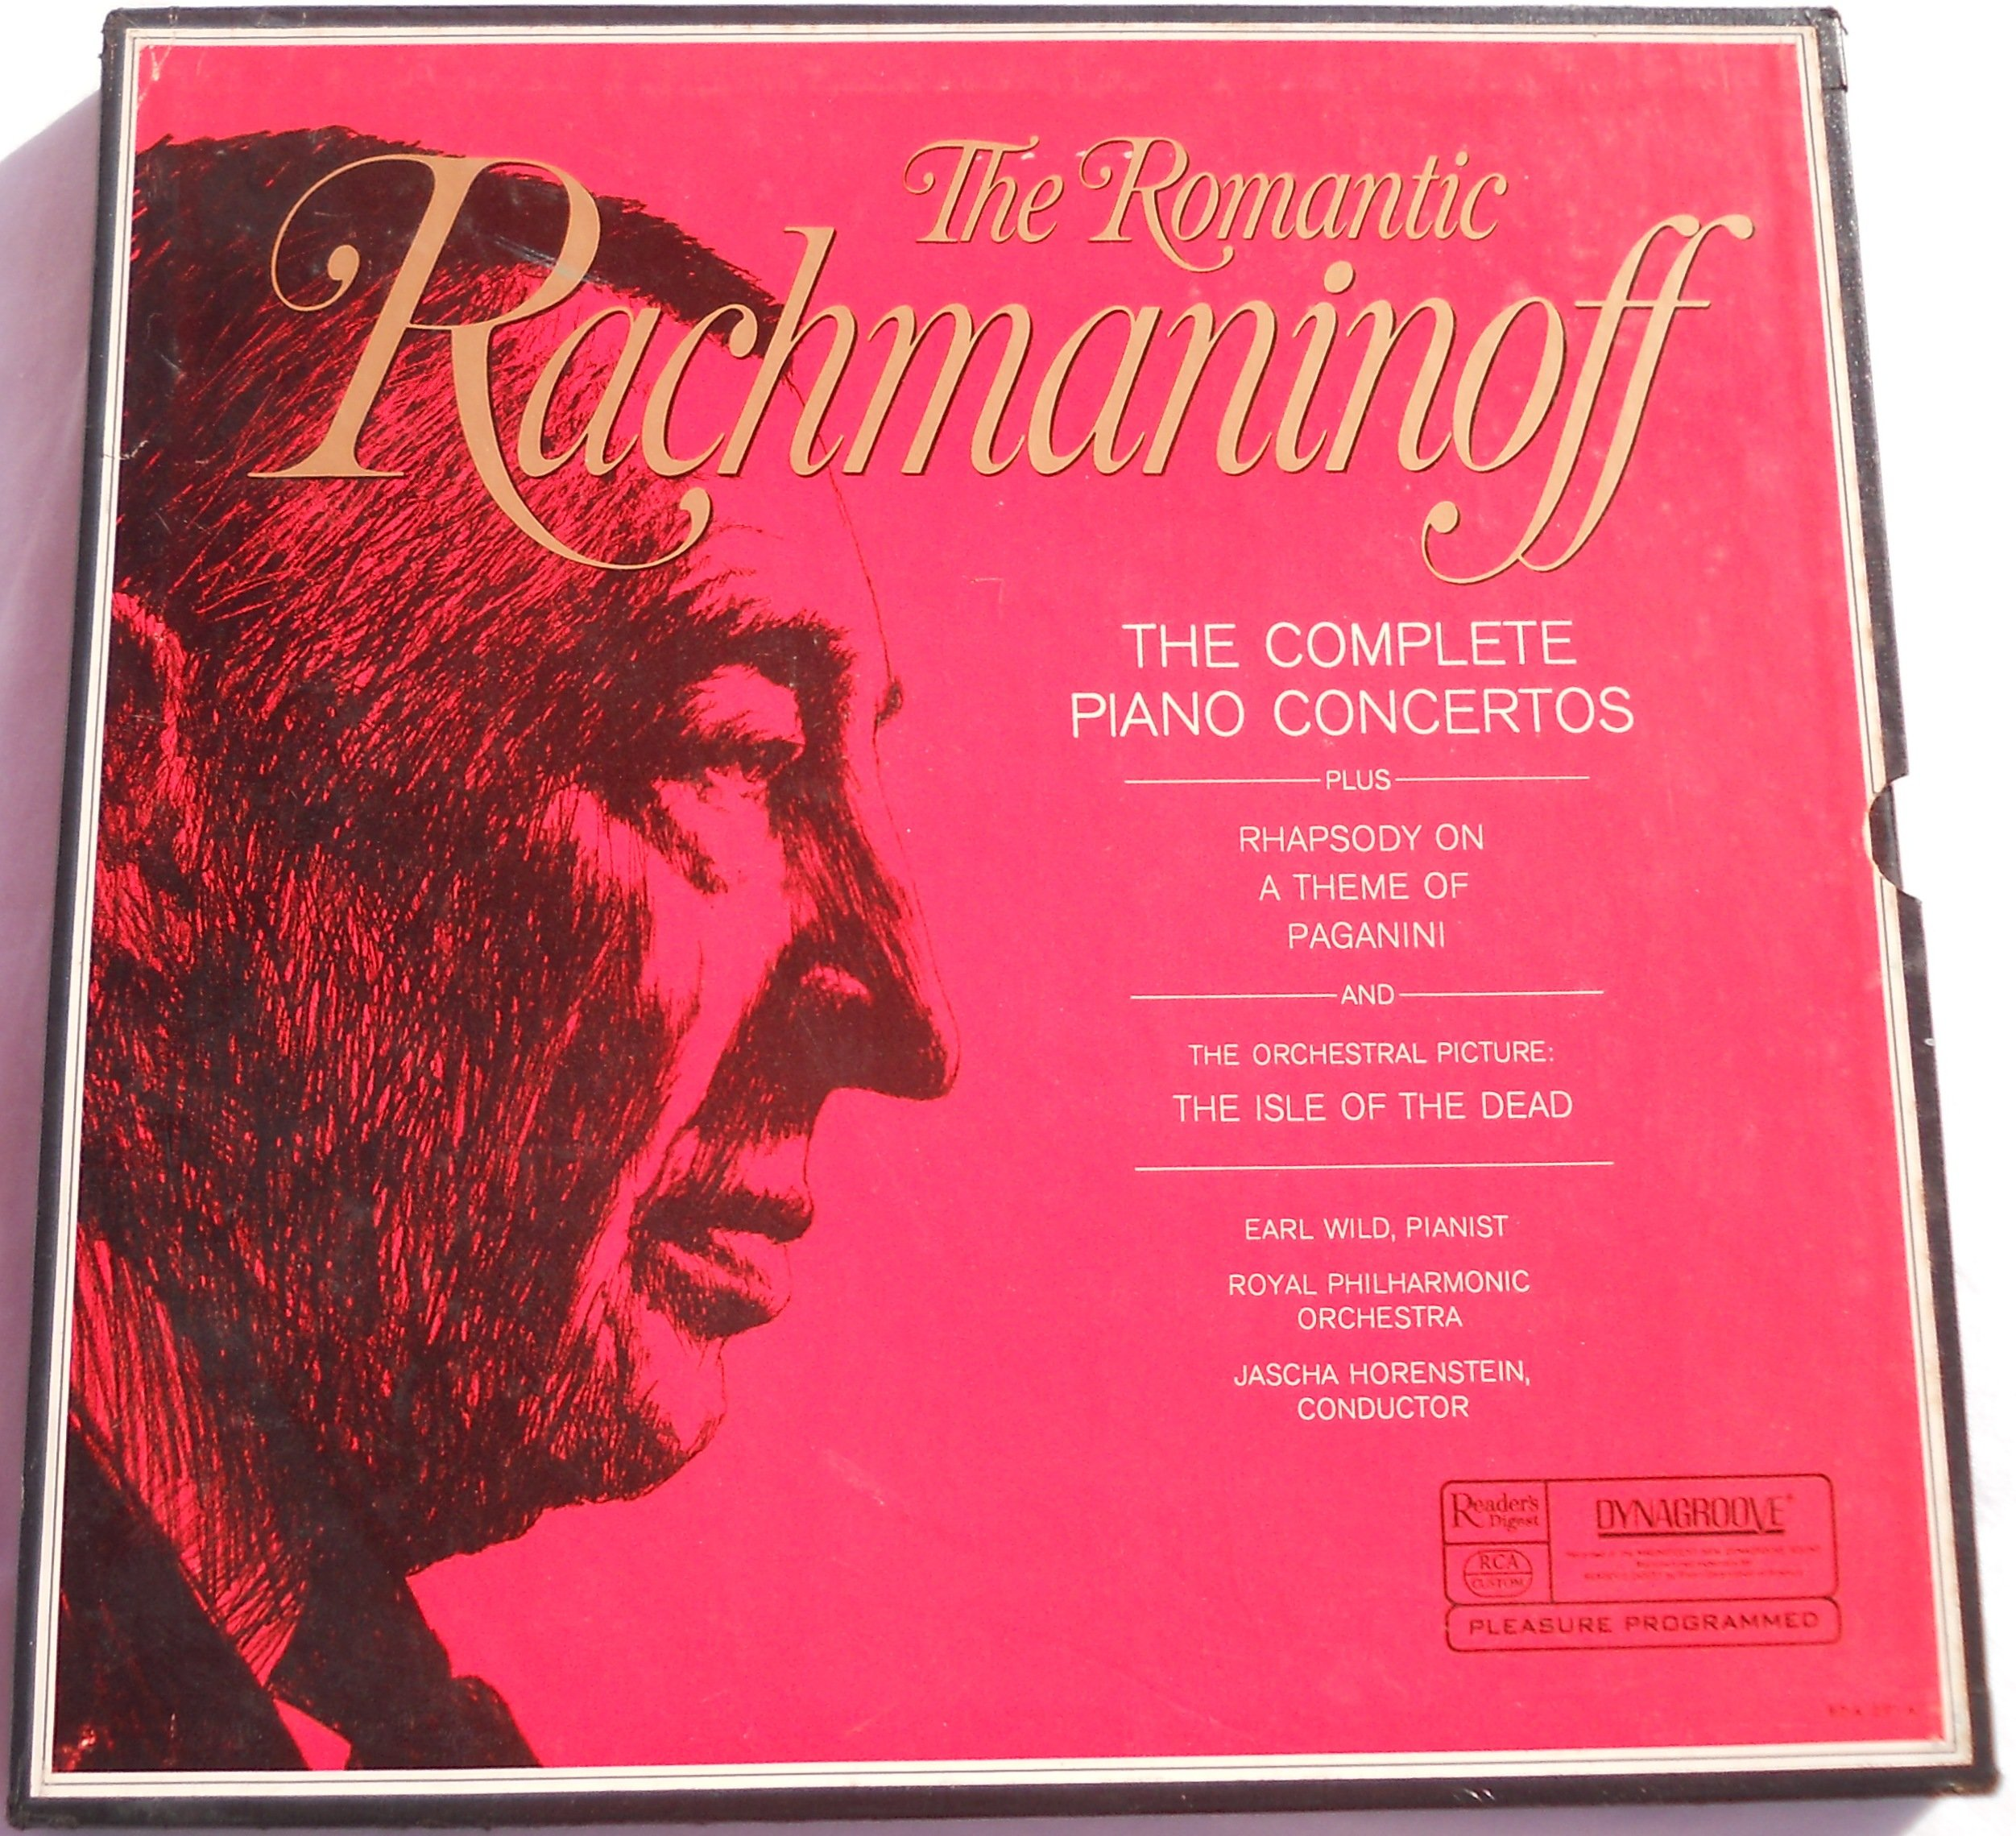 The Romantic Rachmaninoff: The Complete Piano Concertos / Rhapsody on a Theme of Paganini / The Isle of the Dead by Reader's Digest / RCA